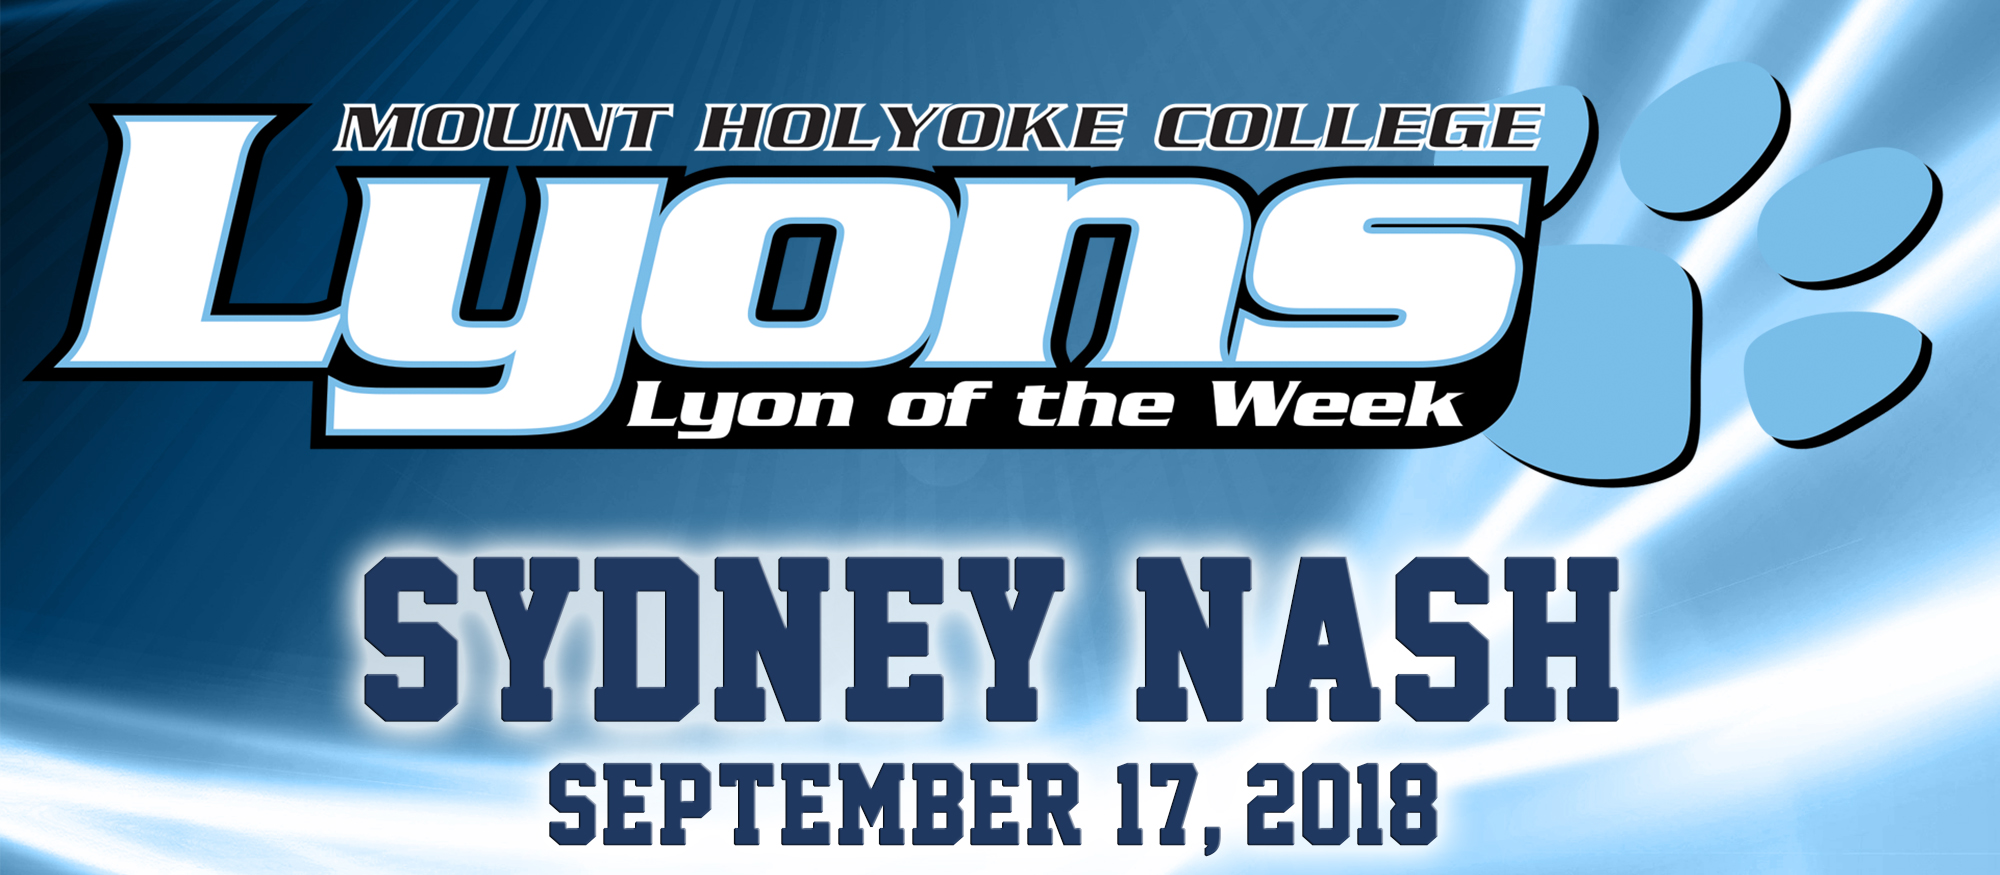 Graphic for the September 17, 2018 Lyon of the Week, Sydney Nash from cross country.